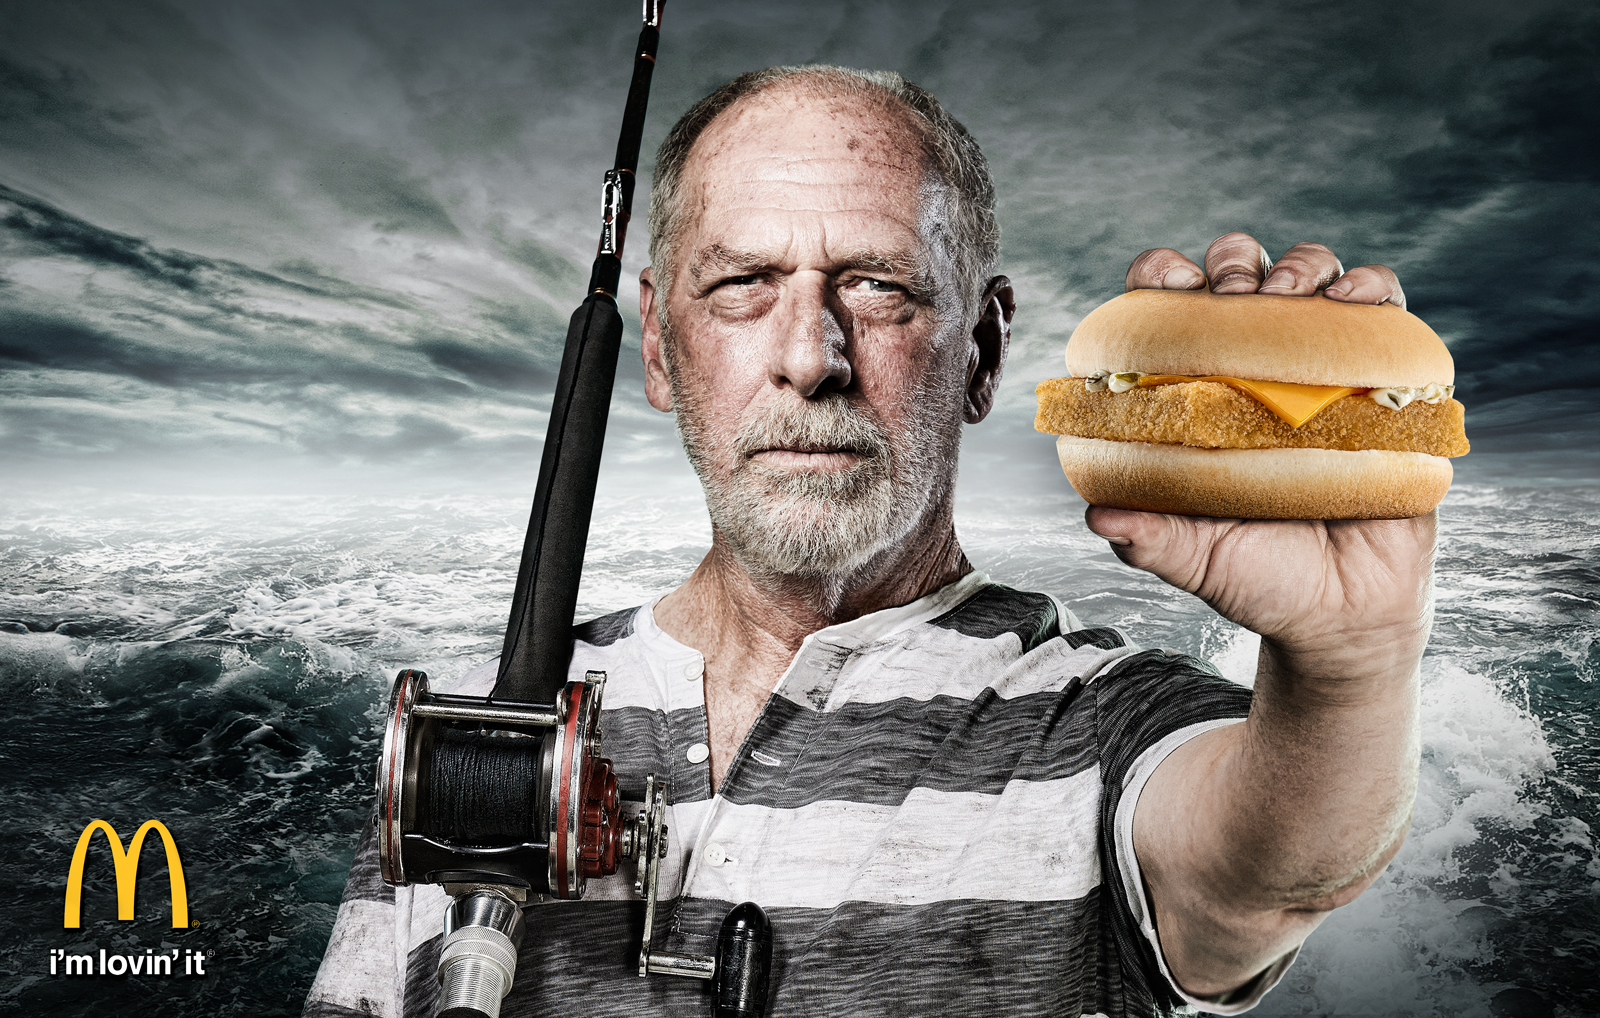 McD_Filet-O-Fish_Fisherman_22x14_F